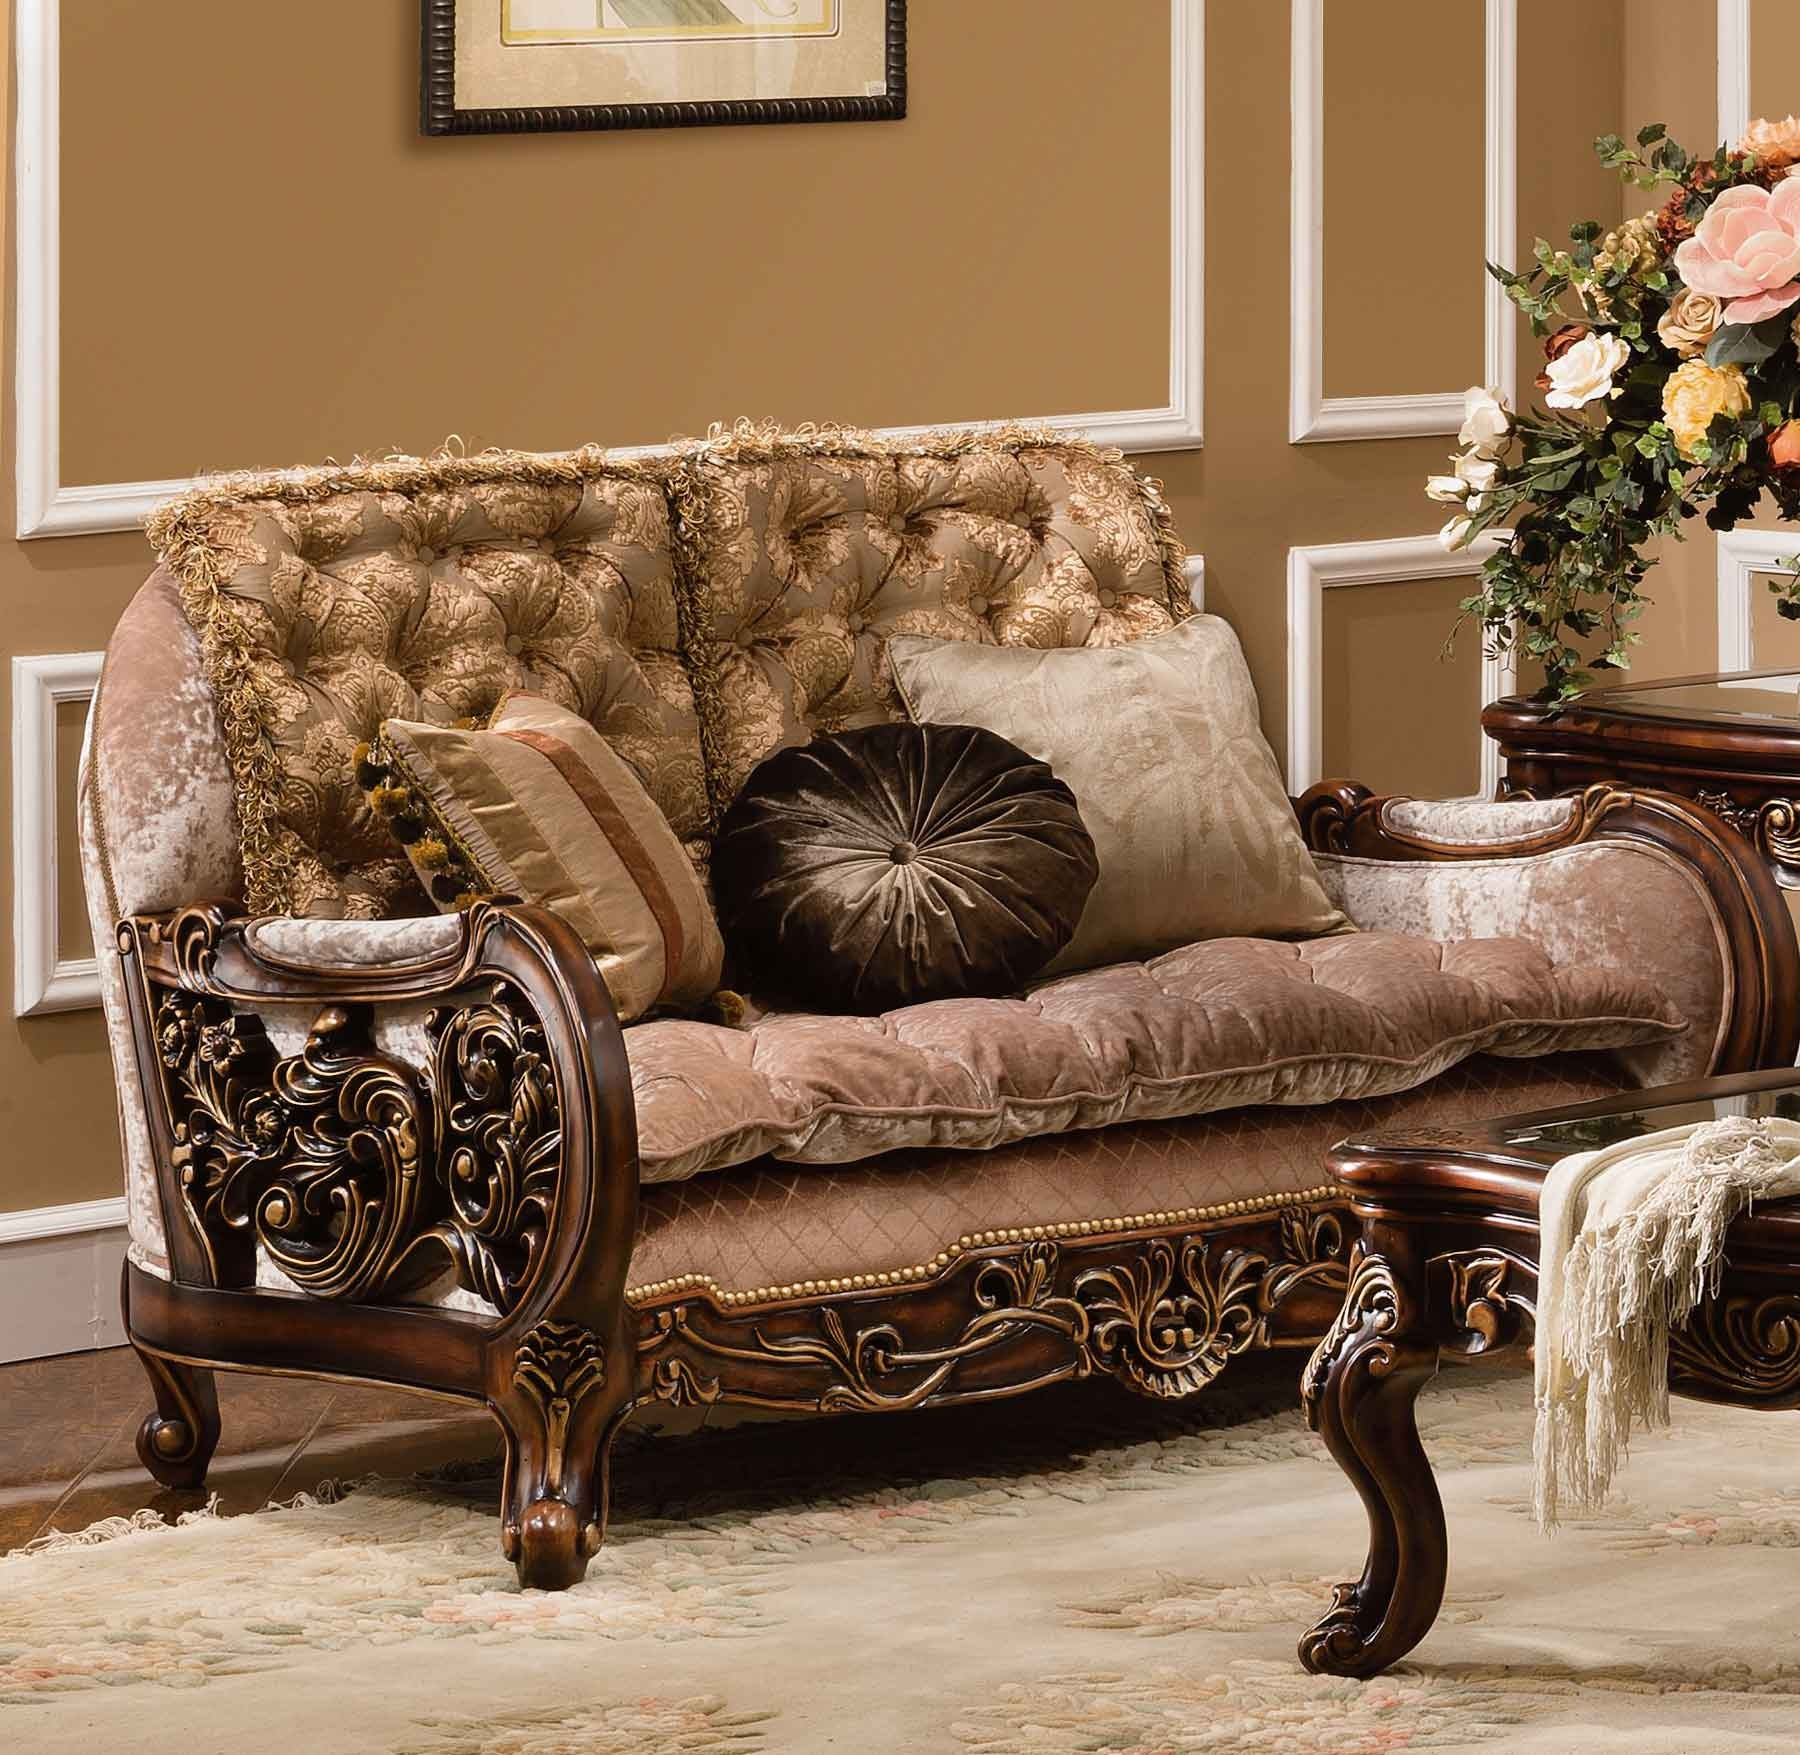 Casabella Living Room Collection Shown In Antique Cherry Finish